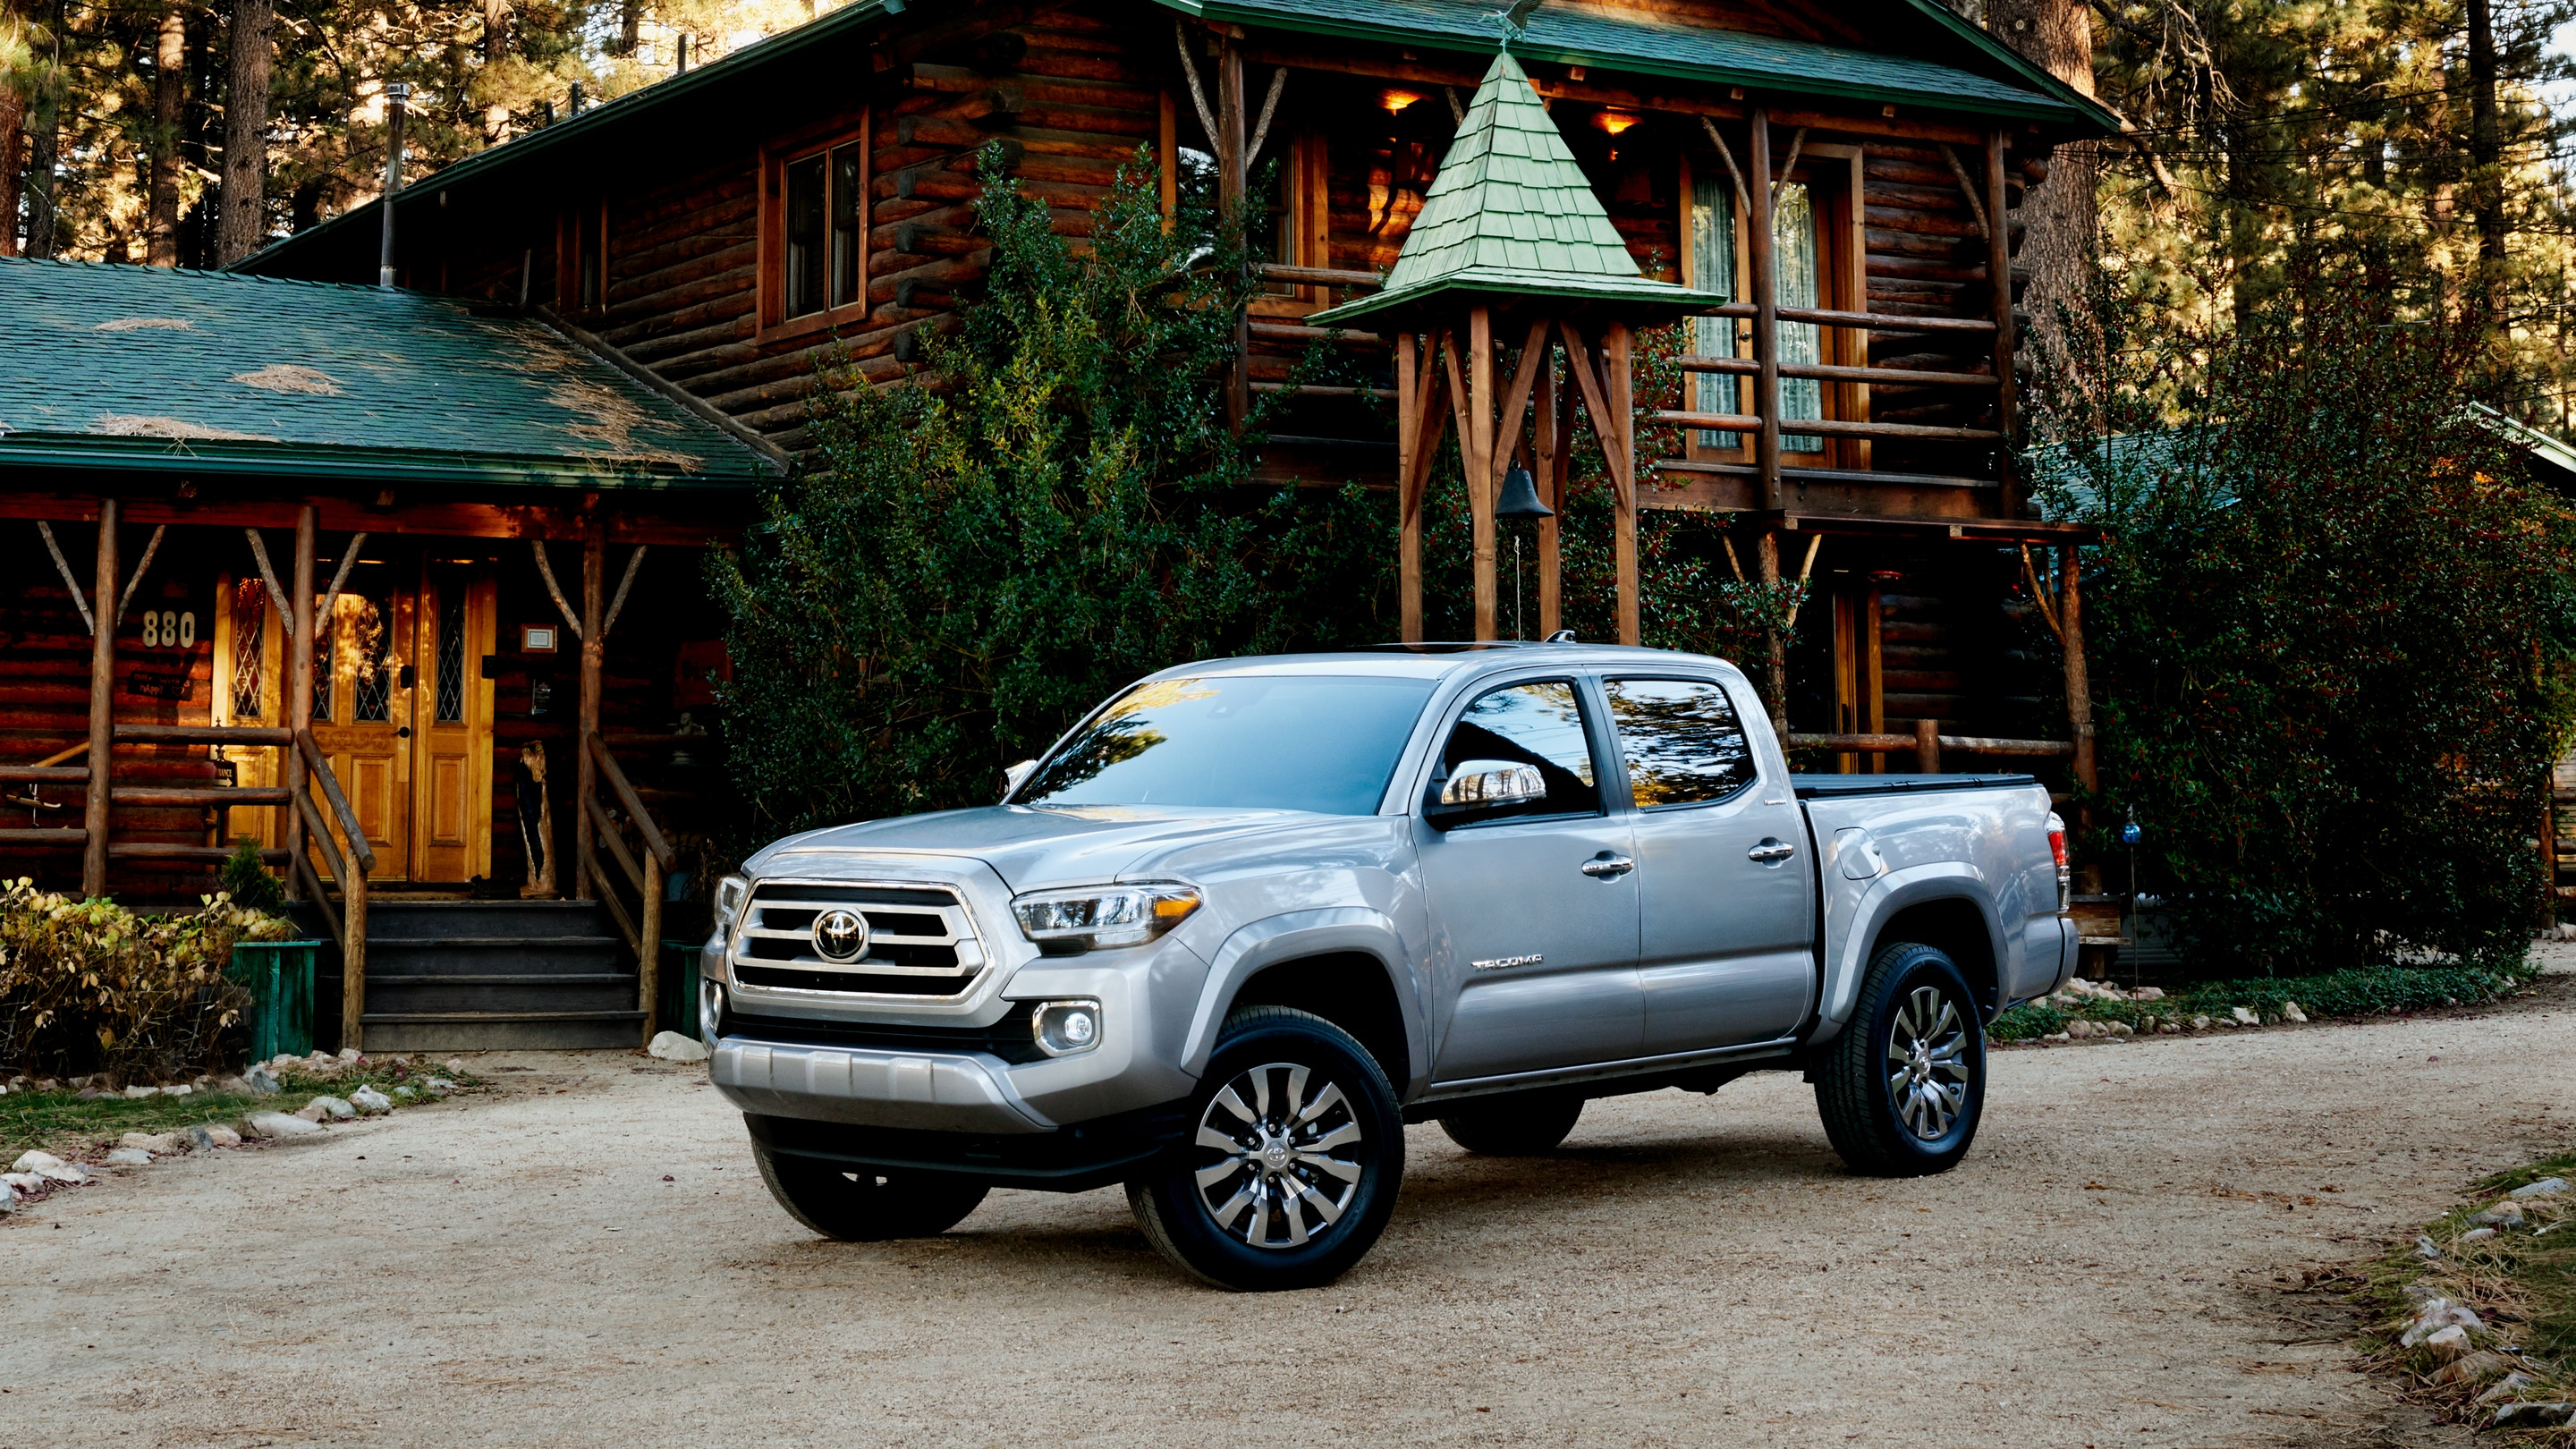 2020 Toyota Tacoma for Sale near Overland Park, KS, 66212